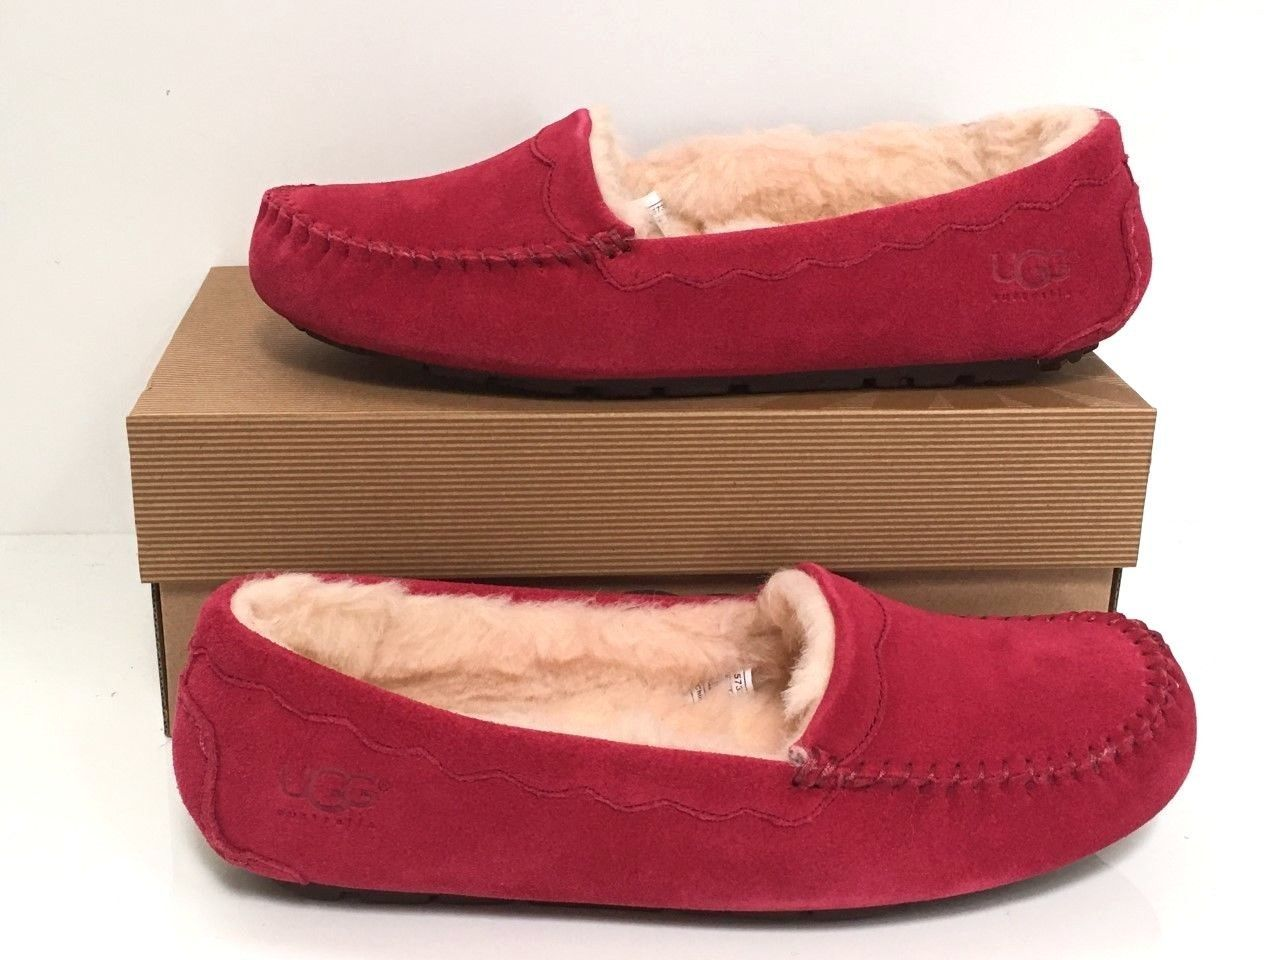 cb967647030 Ugg Australia 57322 Scalloped Suede Sheepskin Slipper Moccasin 7 Red ...